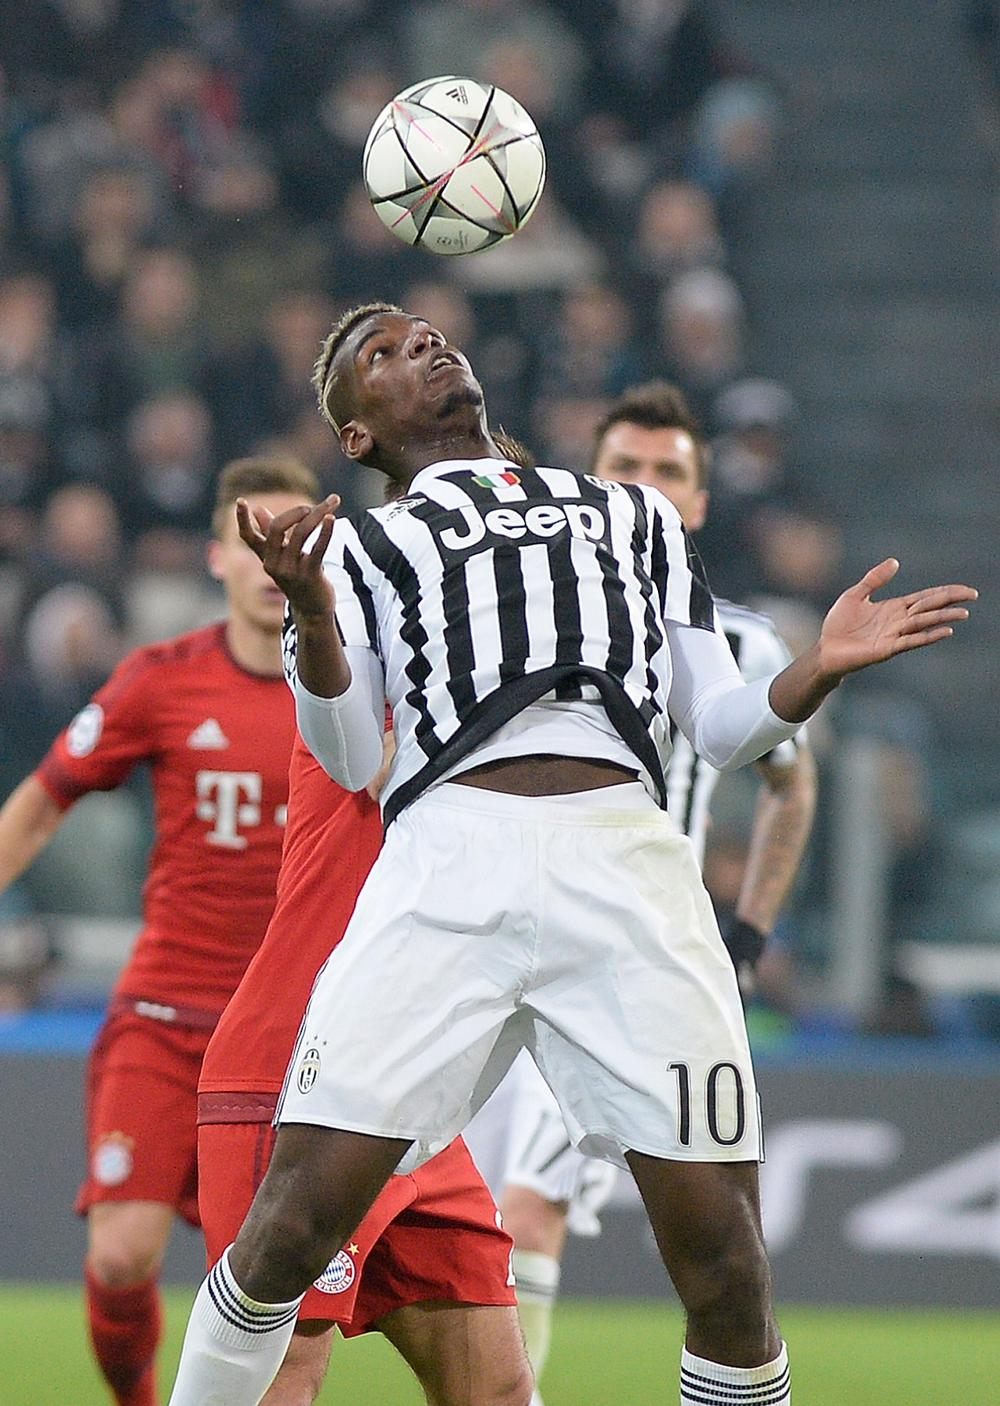 The machine predicted that purchasing Paul Pogba would've ensured Manchester City a Champions League spot / massimo Pinca / Press association images